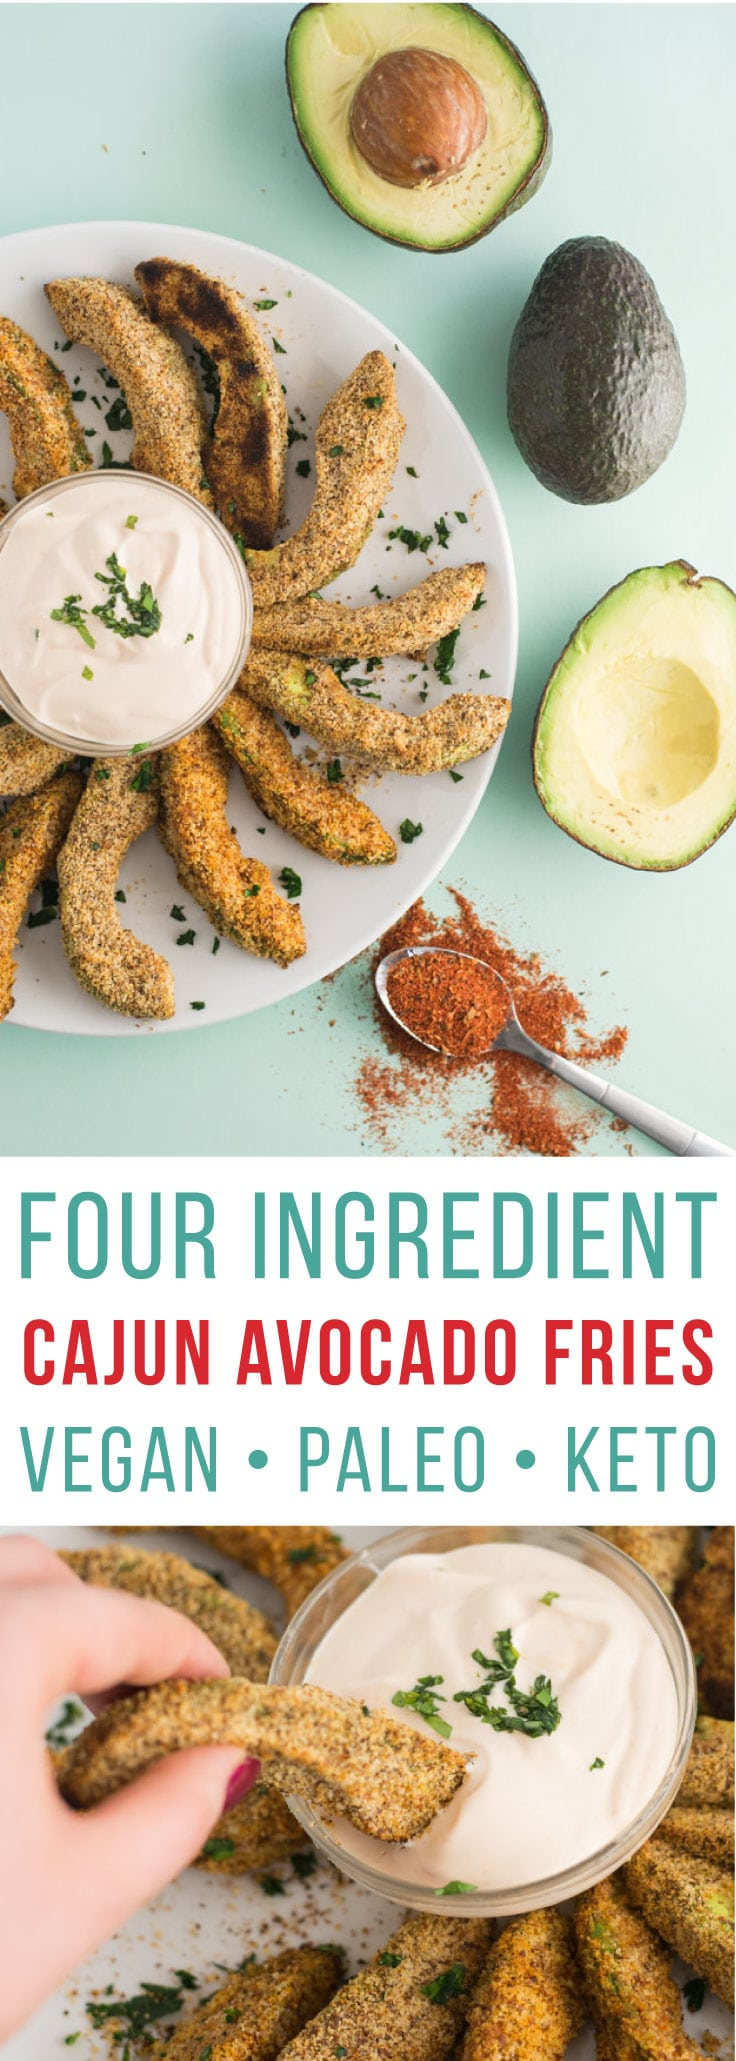 Avocado Fries -- These avocado fries only require four ingredients and can be baked to perfection in 15 minutes! Almond milk, almond meal, cajun seasoning, and avocados make this snack recipe totally vegan, paleo, gluten-free and keto! #healthy #vegan #paleo #keto #cleaneating #glutenfree | mindfulavocado